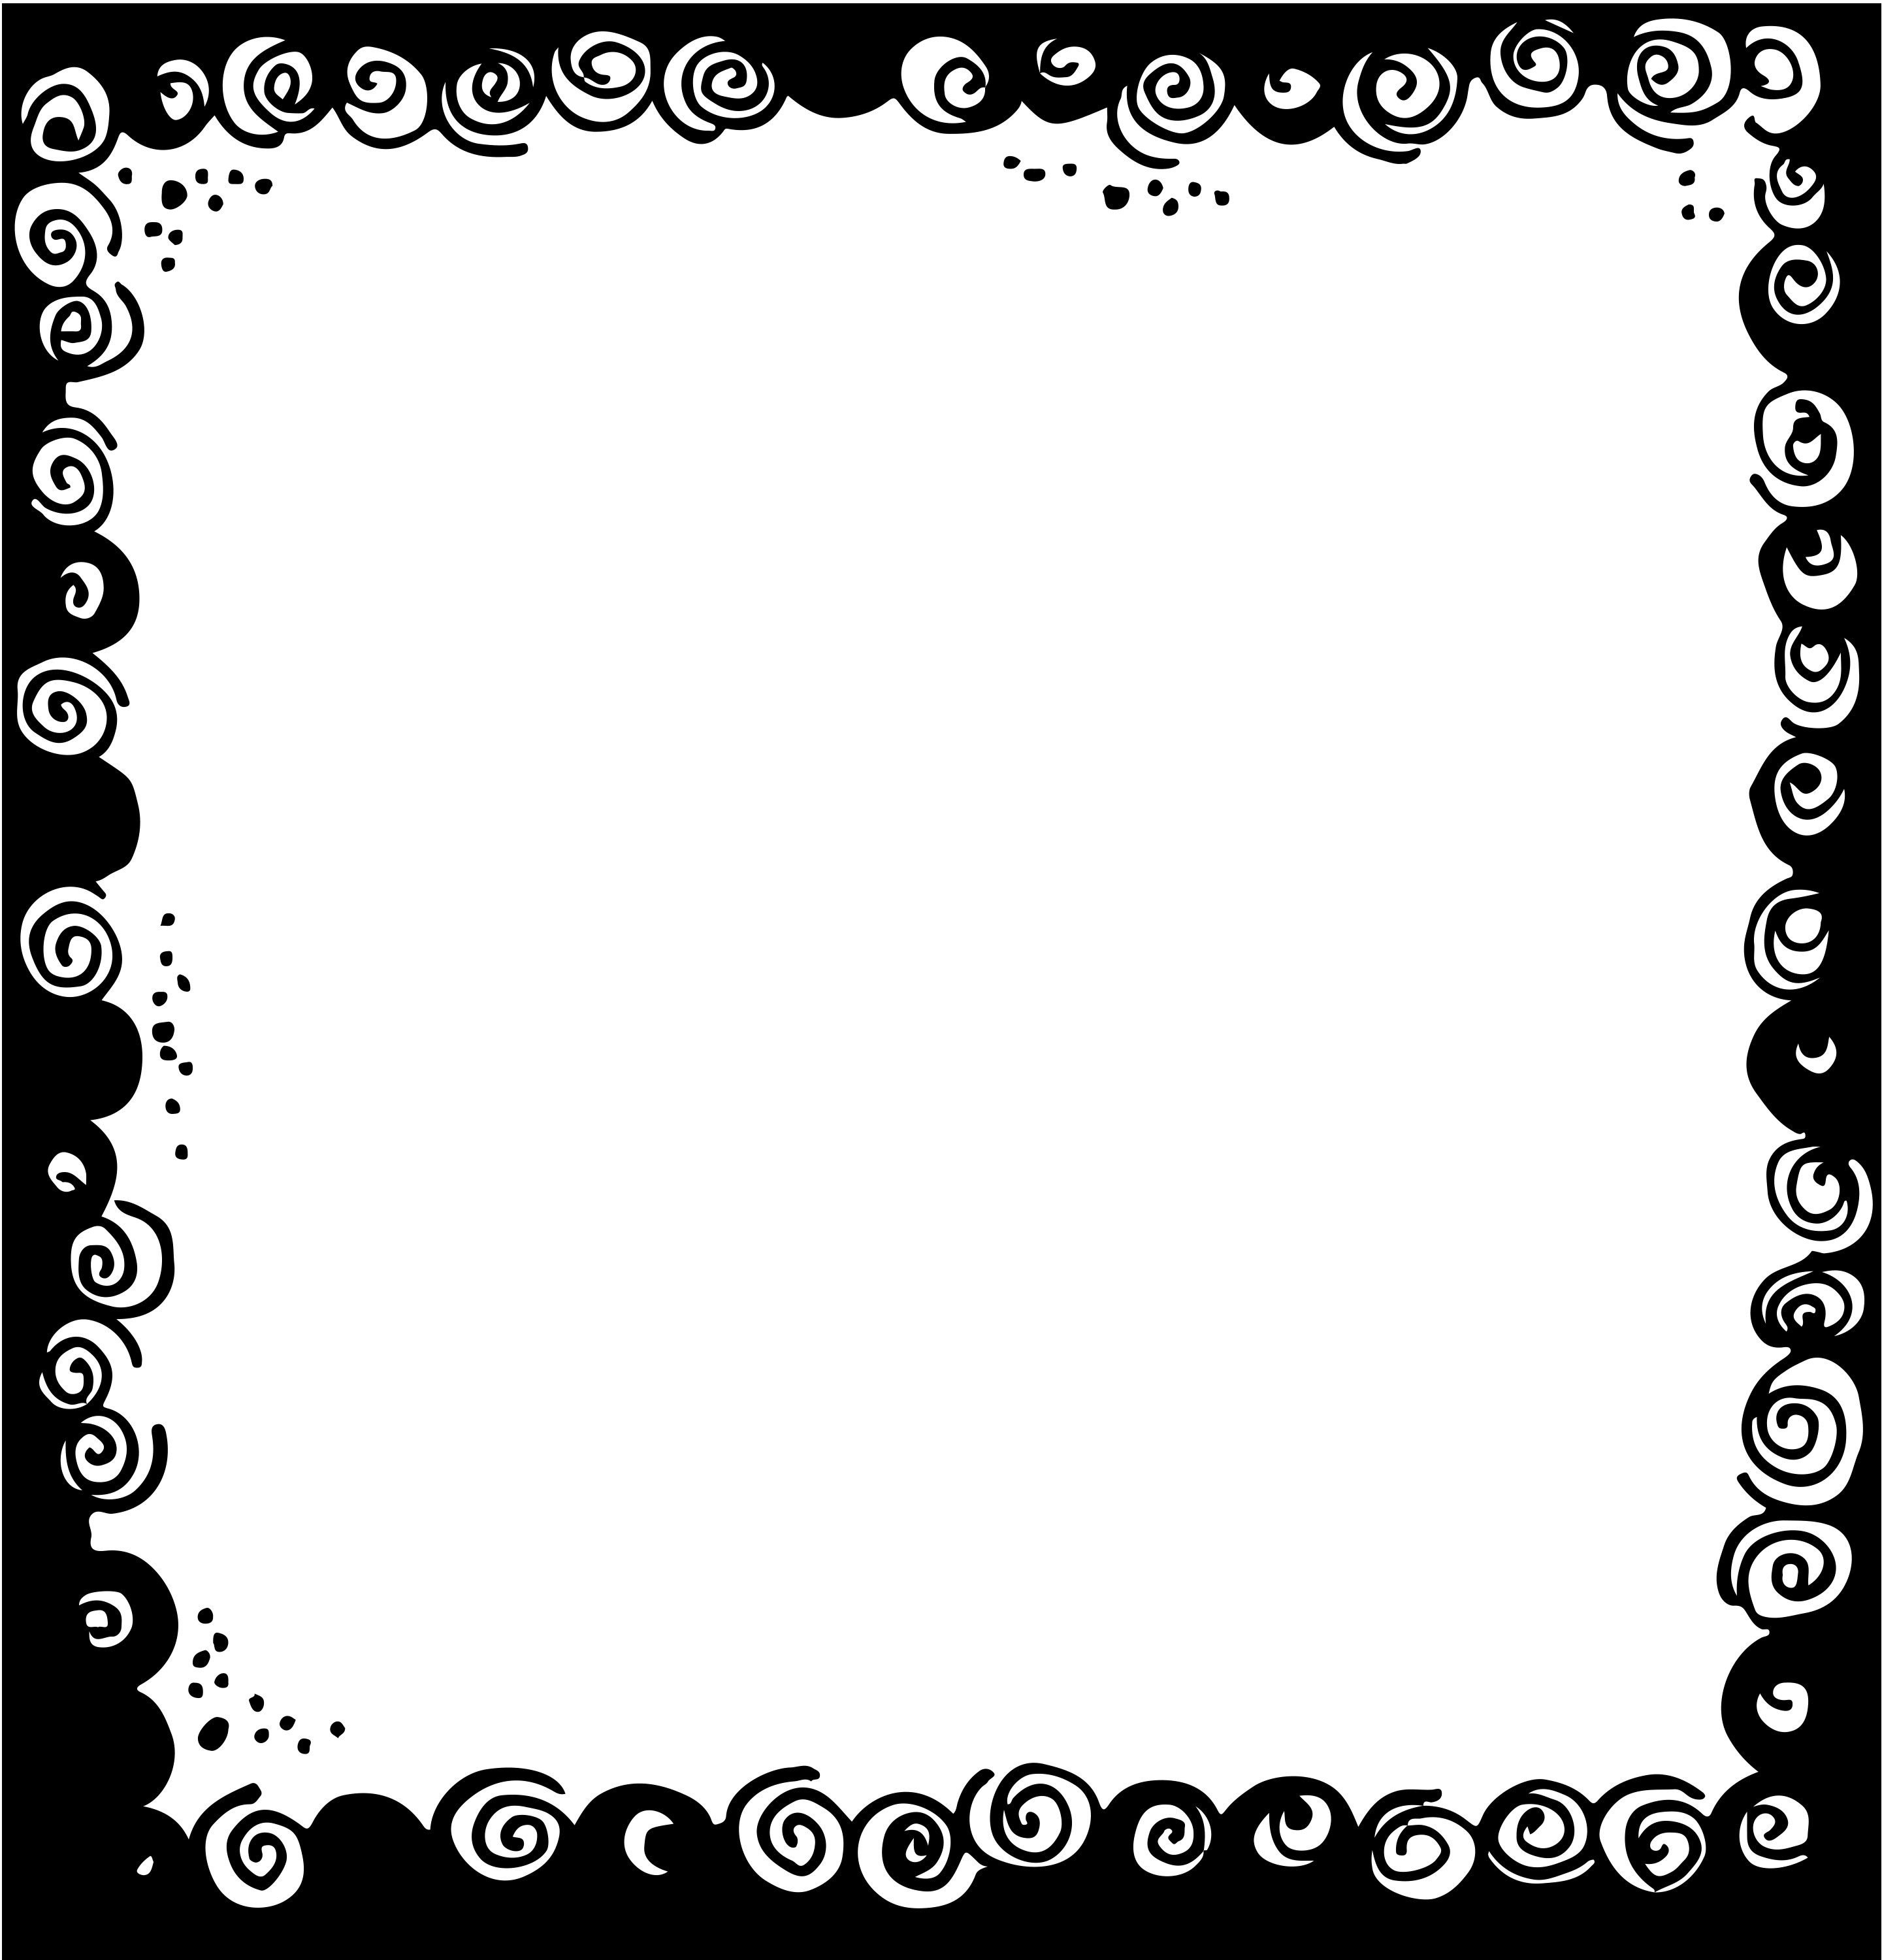 Border or Frame for newsletters announcements